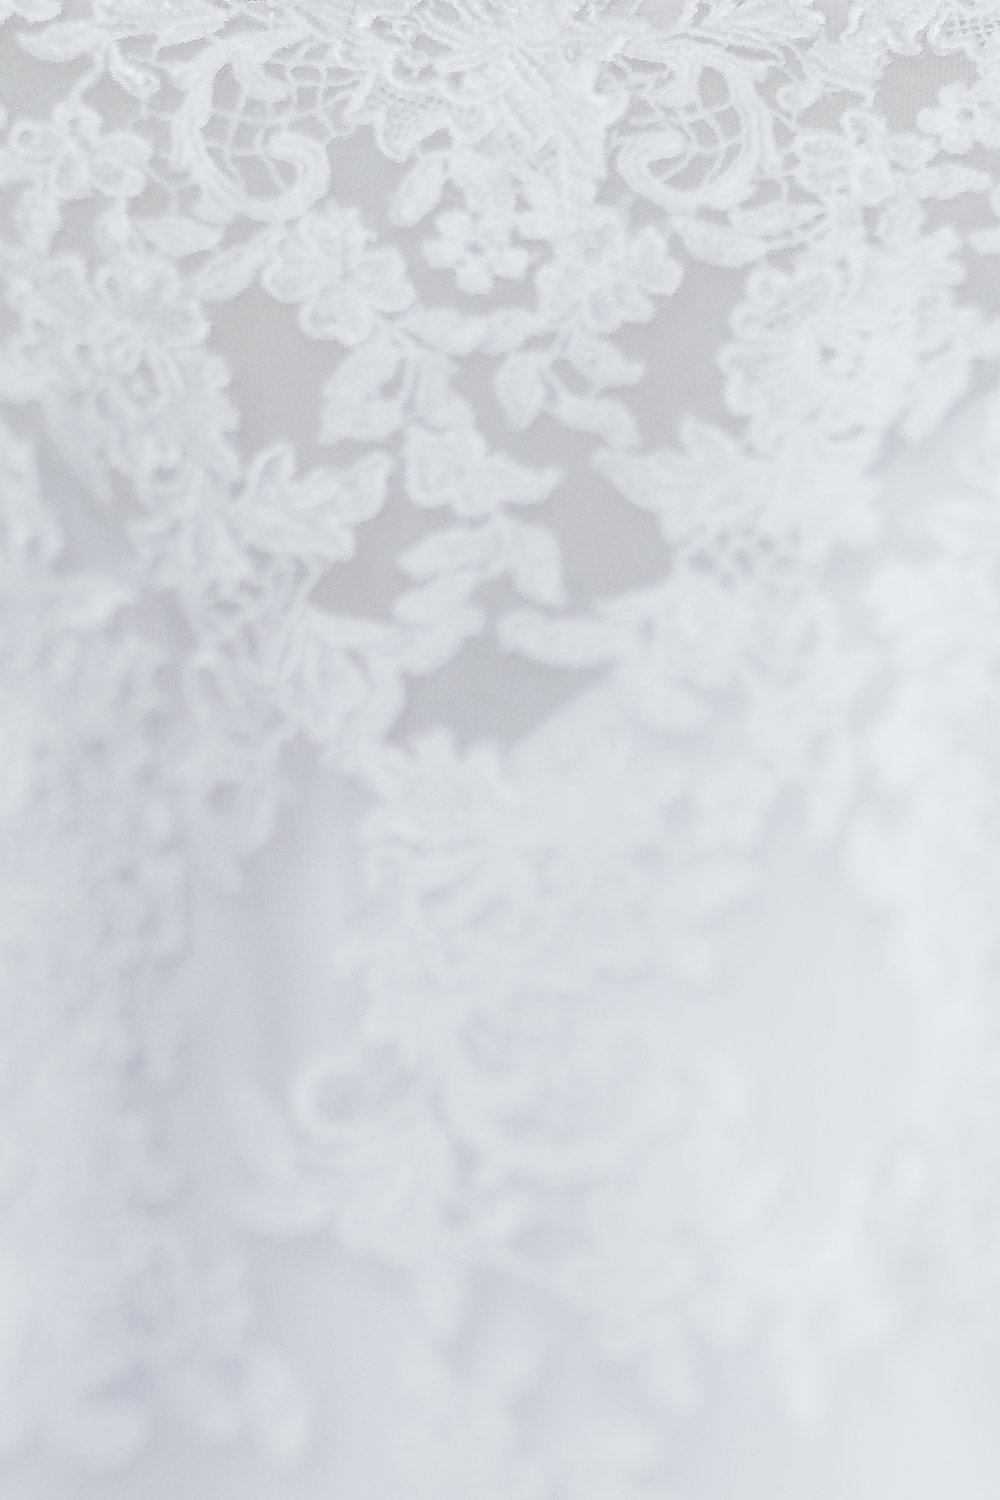 Lace details of wedding dress Maryland wedding